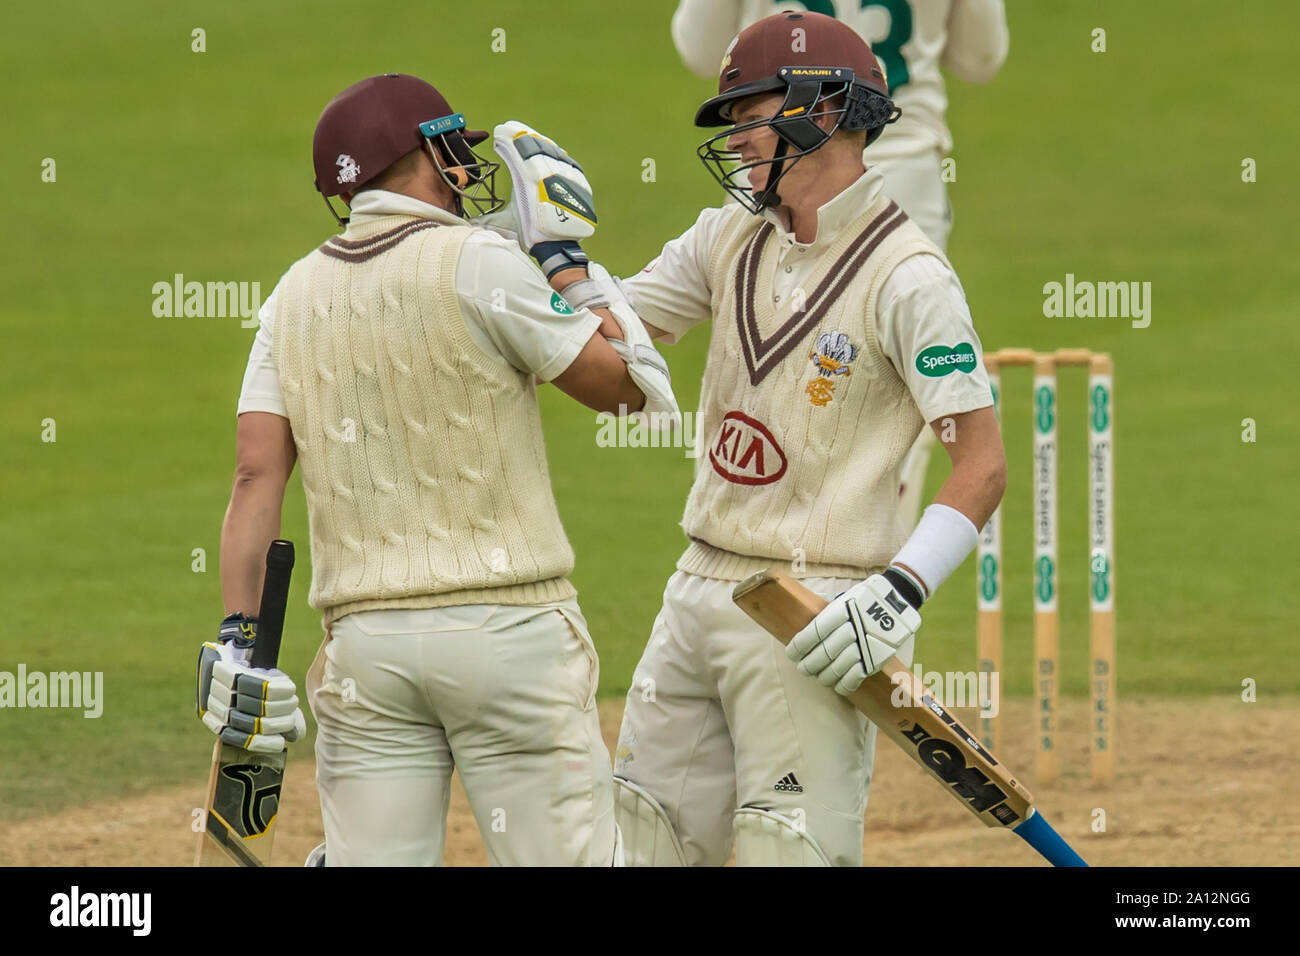 London, UK. 23 September, 2019. Ollie Pope congratulates Scott Borthwick on reaching his 100 batting for Surrey against Nottinghamshire on day one of the Specsavers County Championship game at the Oval. David Rowe/Alamy Live News Stock Photo